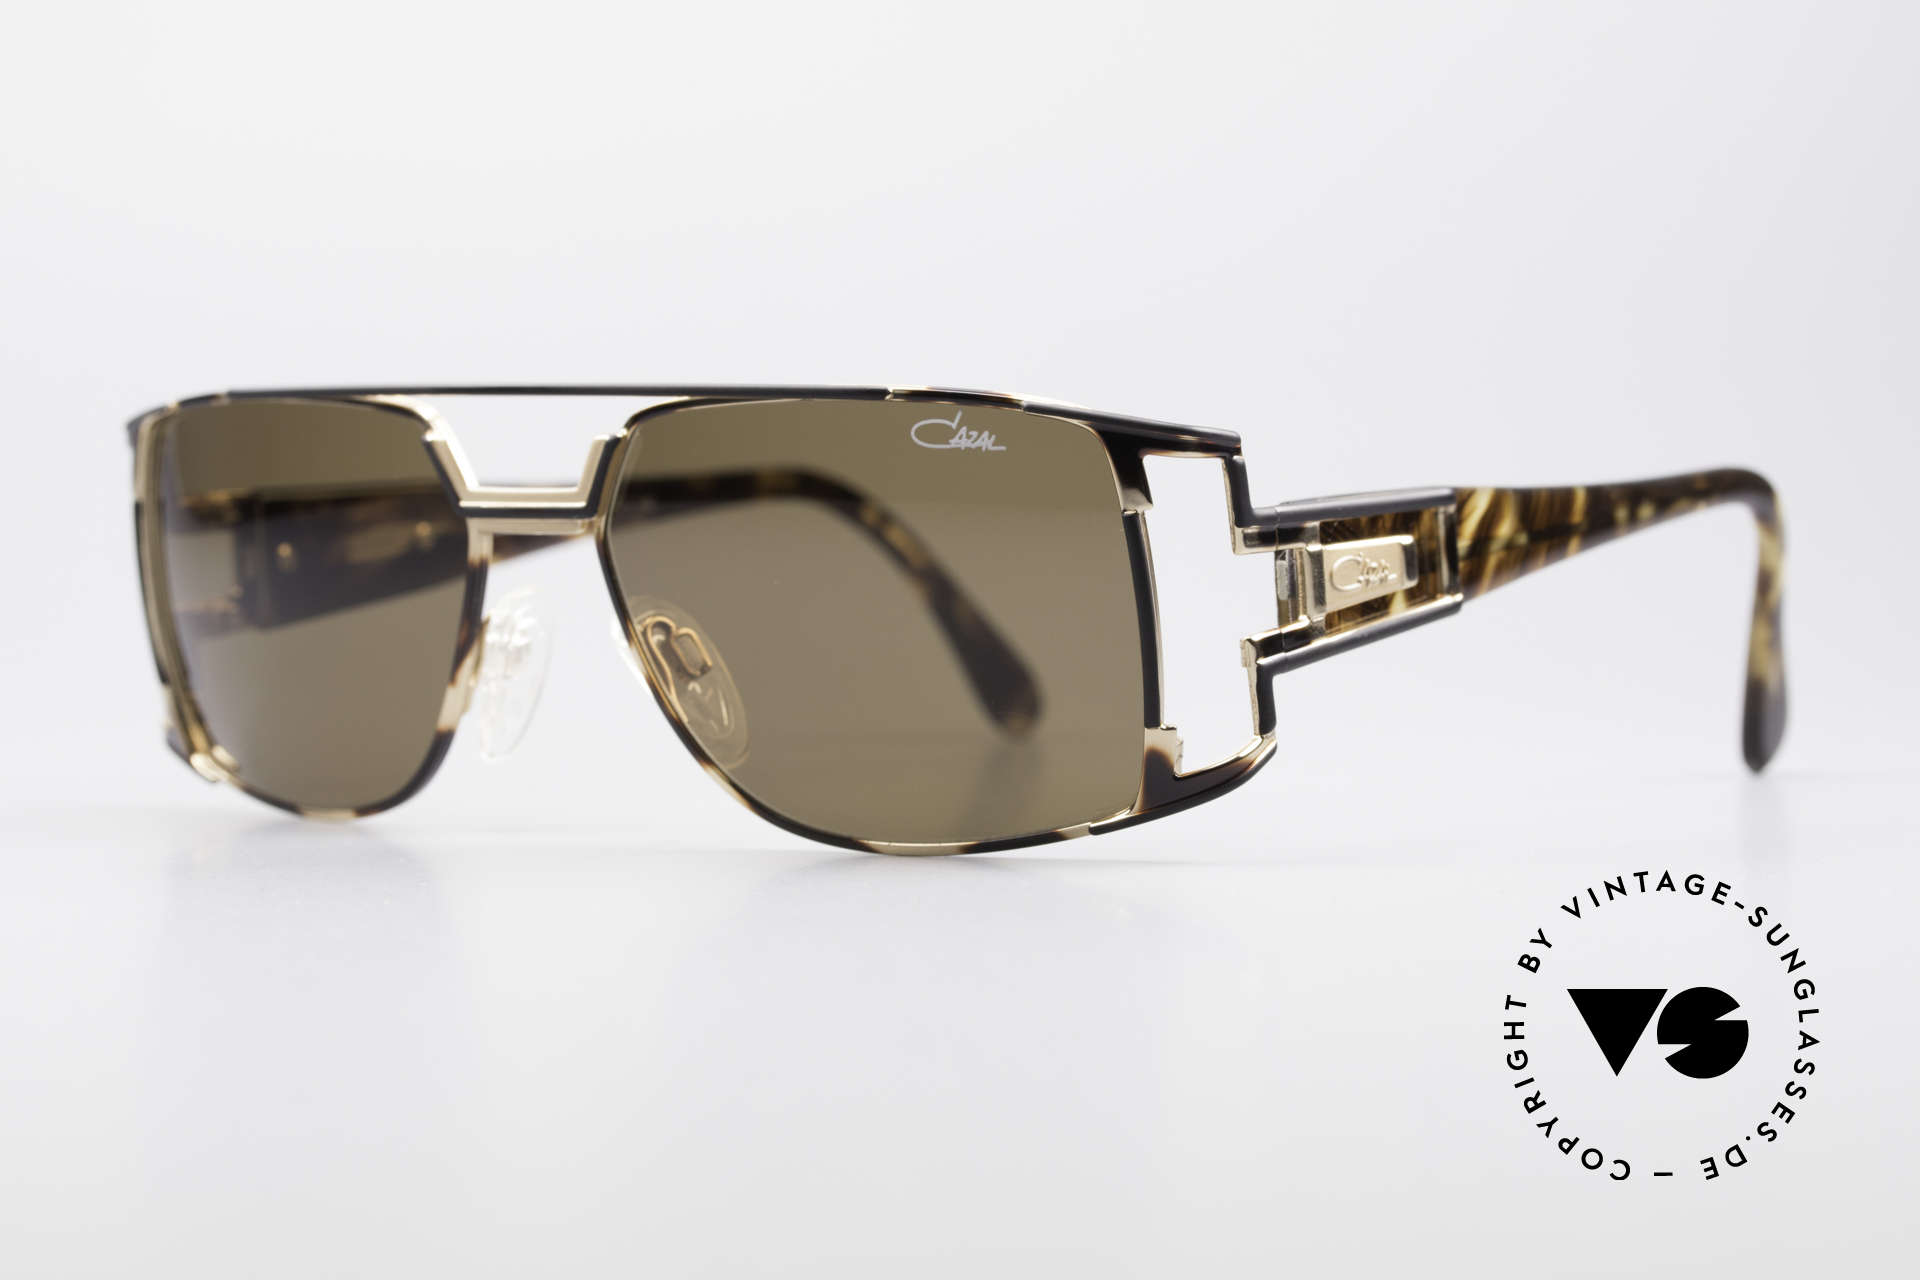 Cazal 974 Designer Shades Ladies Gents, in addition a very elegant color concept: amber/black, Made for Men and Women